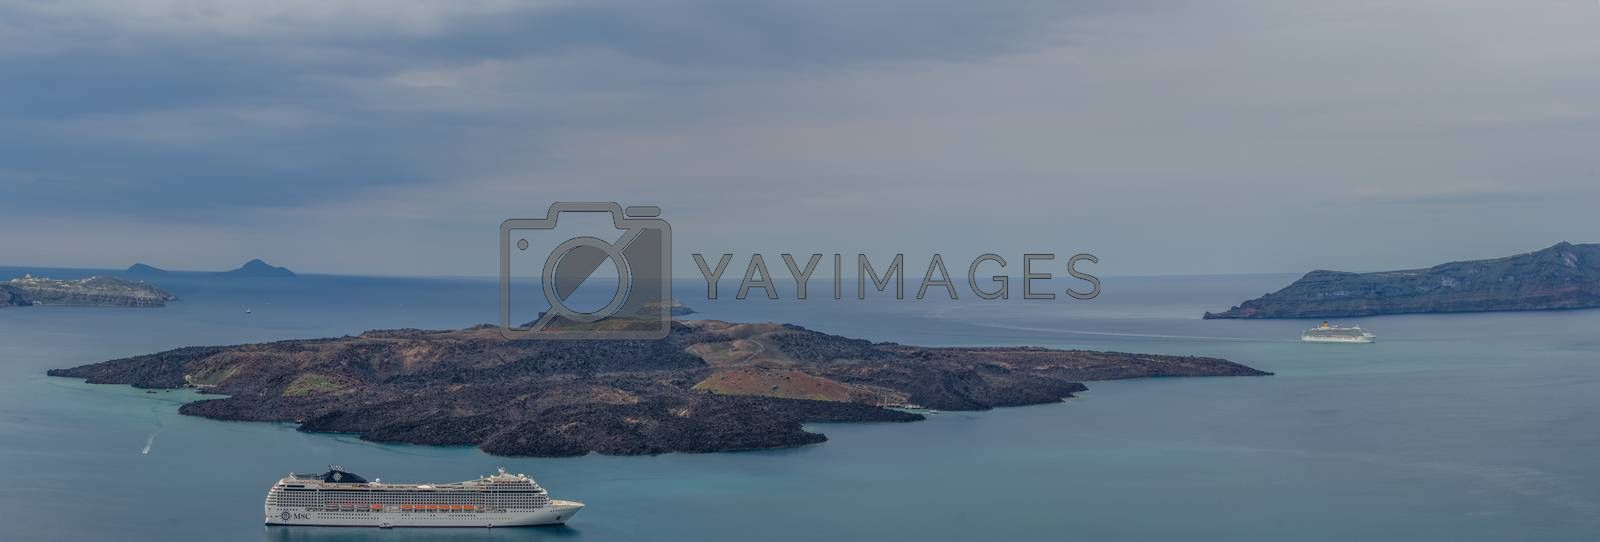 cruise ships near an island in the sea panorama view